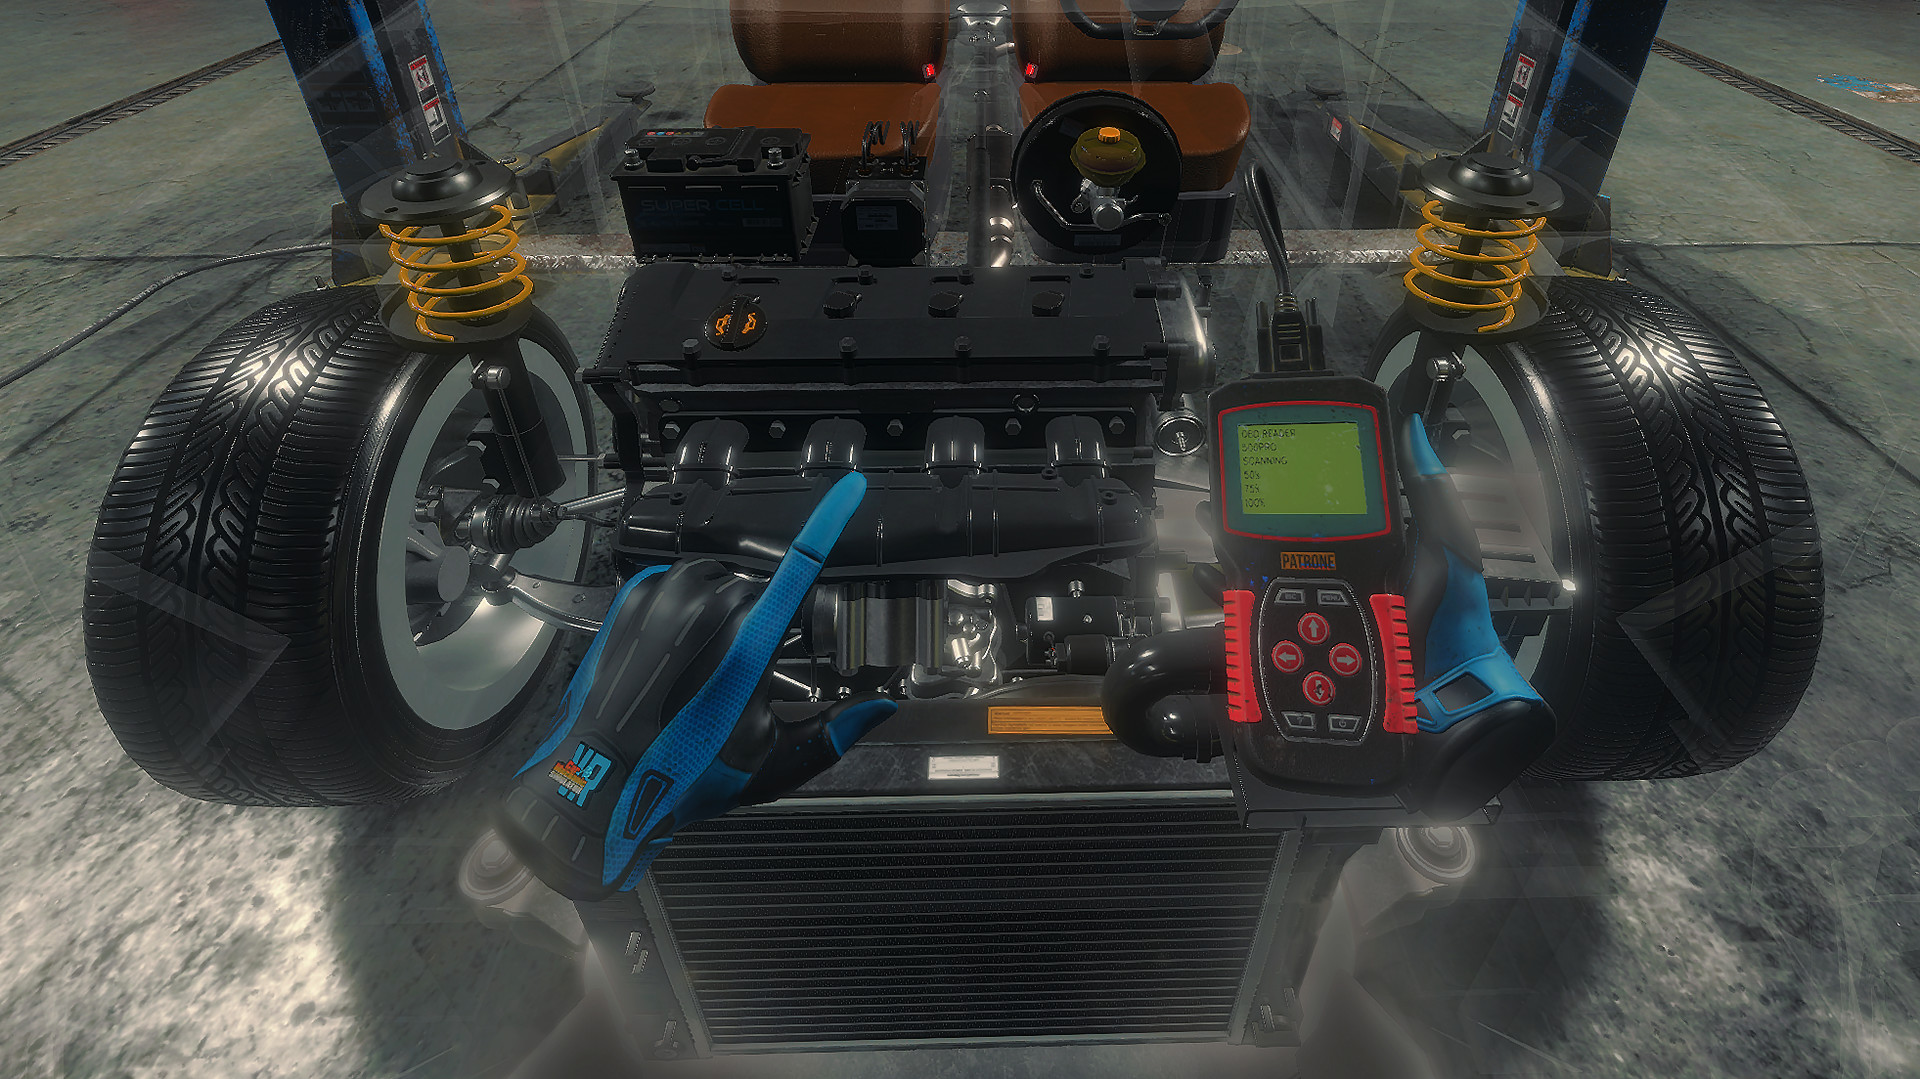 Car Mechanic Simulator Is Headed To VR In Q2 of 2021